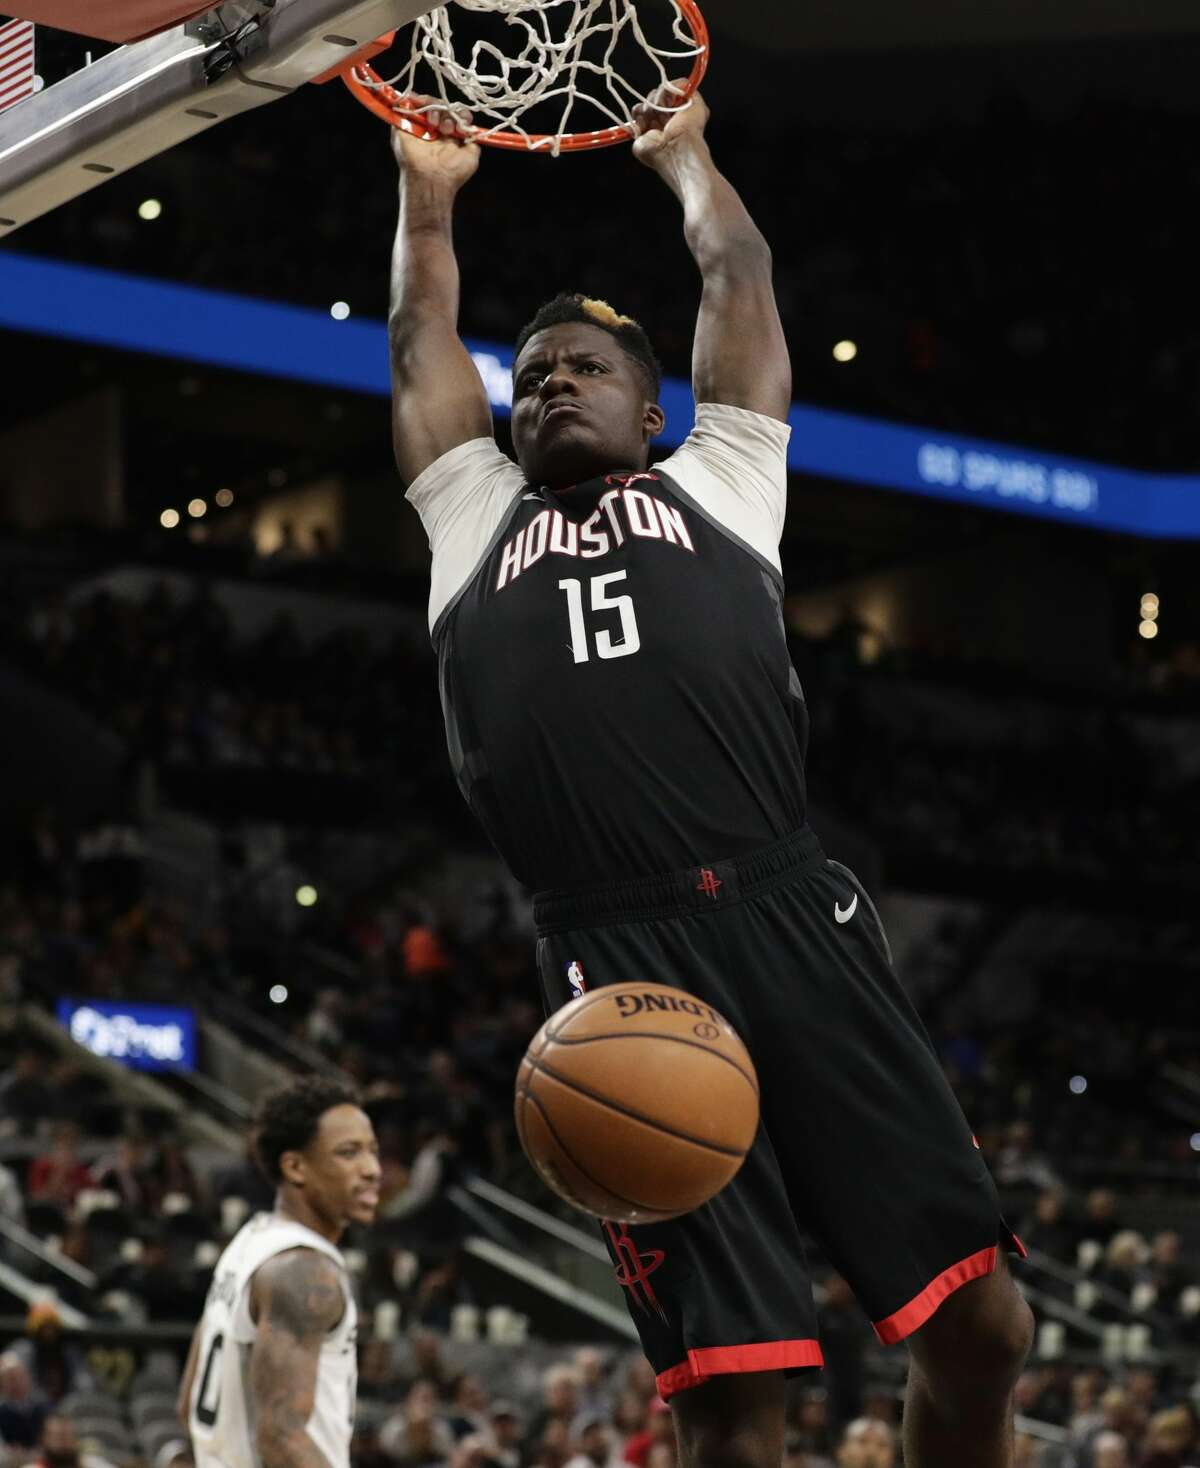 Houston Rockets center Clint Capela scores against the San Antonio Spurs during the first half of an NBA basketball game in San Antonio, Tuesday, Dec. 3, 2019. (AP Photo/Eric Gay)